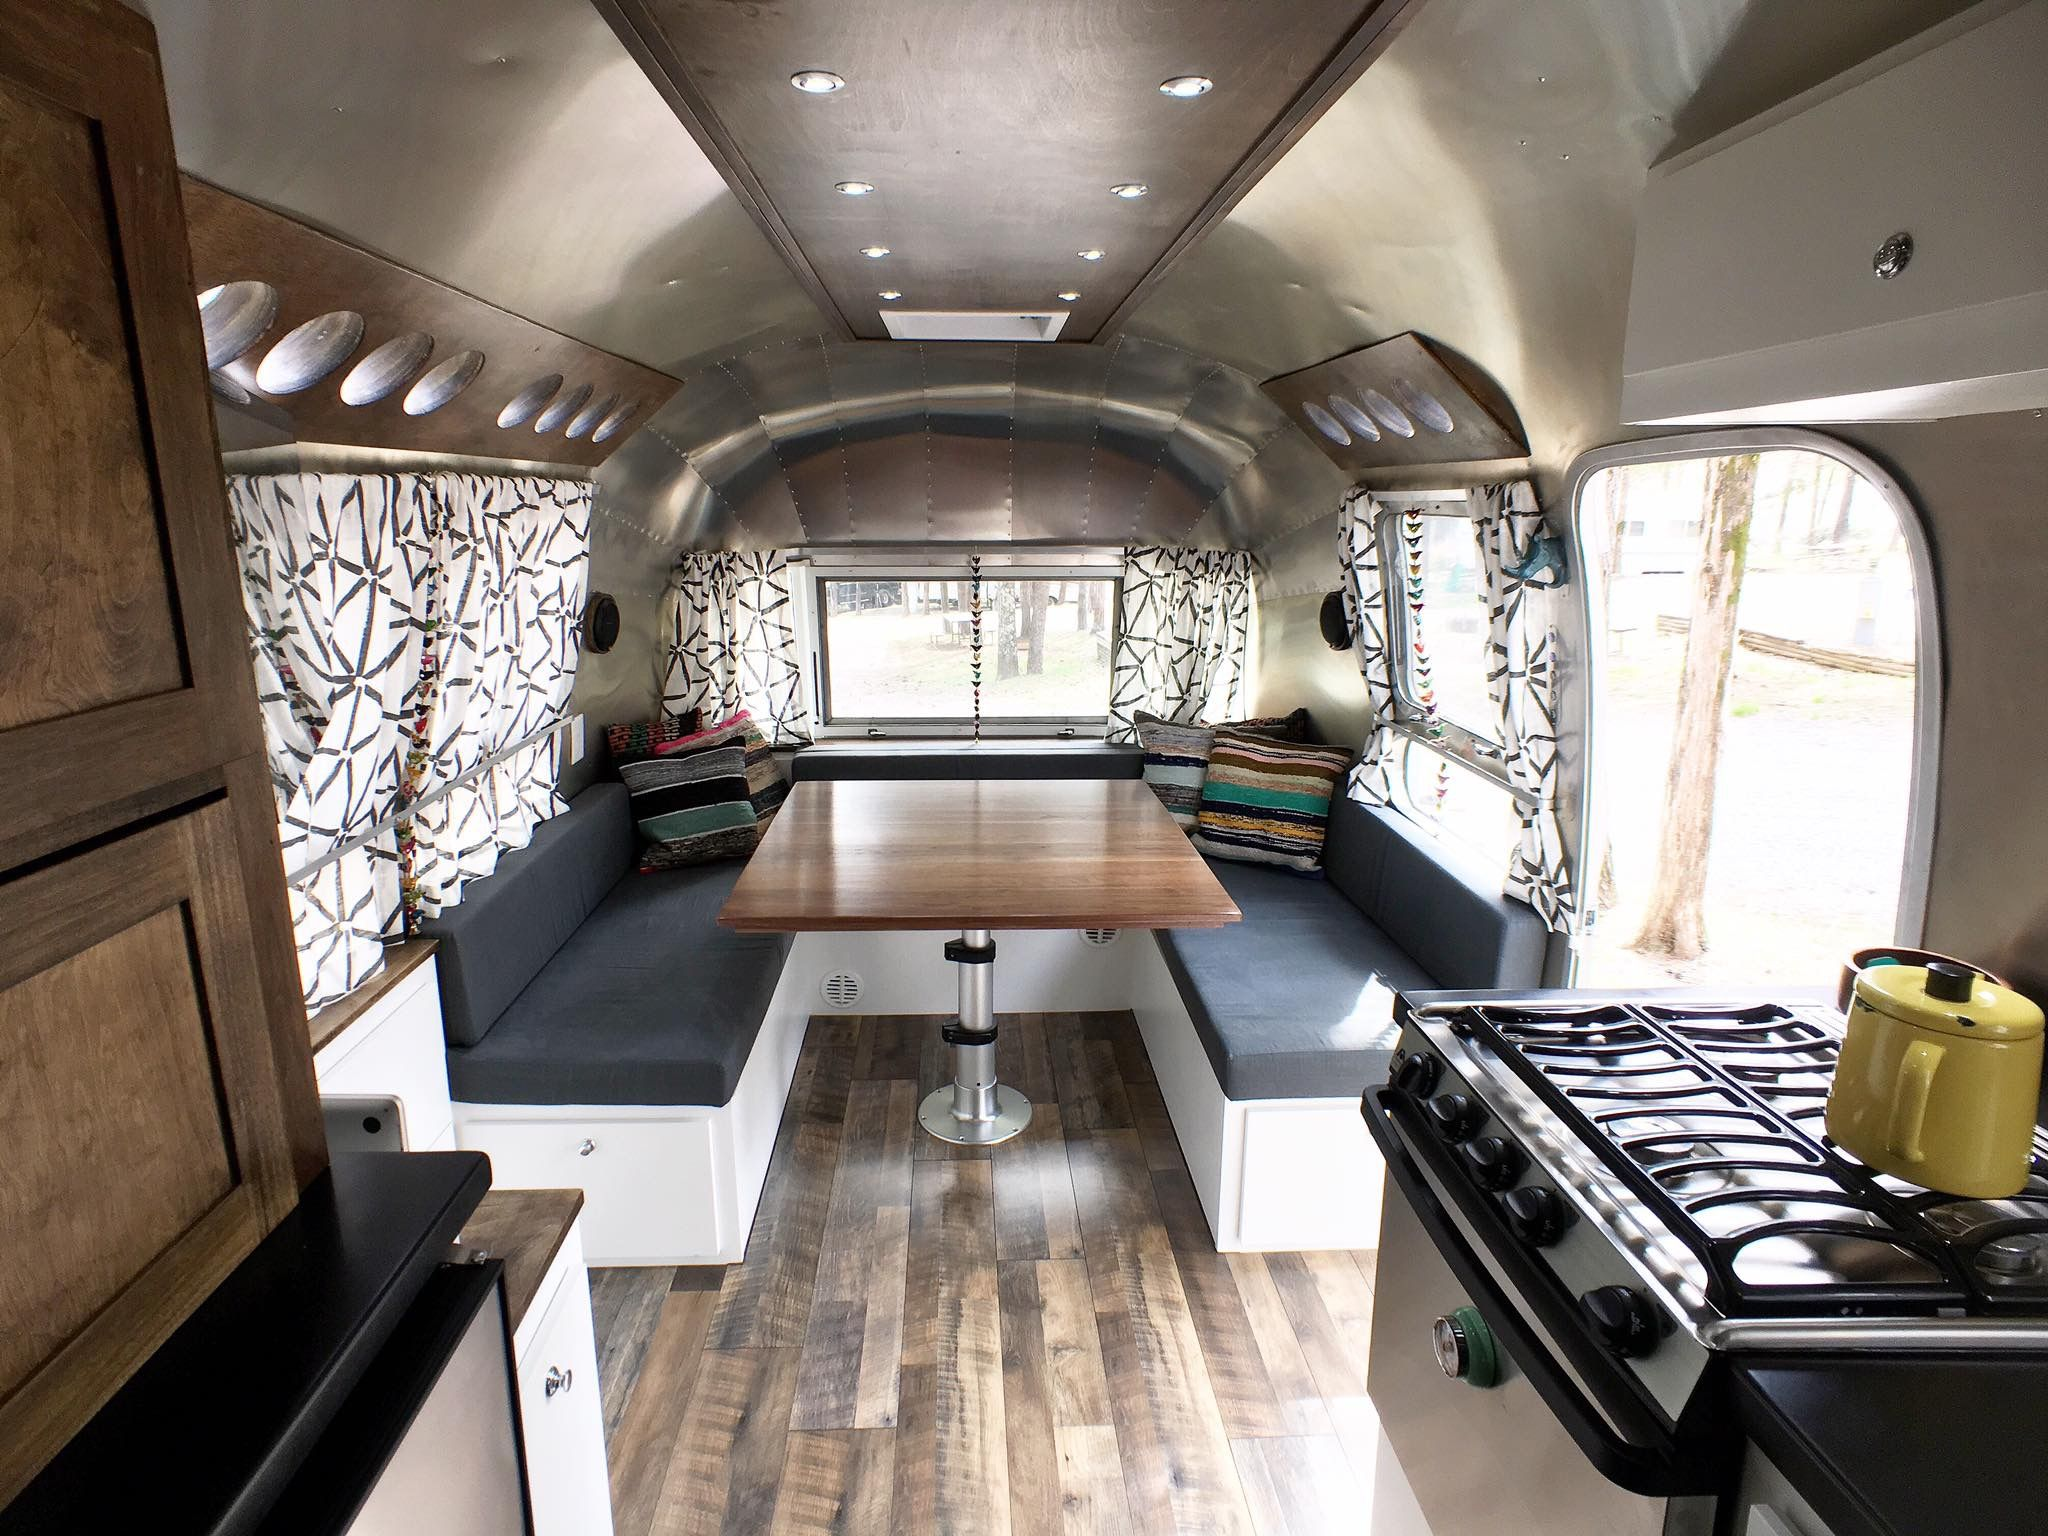 Airstream Dinette Vintage Airstream 1972 Master Bedroom/ Office/ Dinette  Loving The Bold, Graphic Curtain Print And The Contrast Of Darkers Woods  And White.